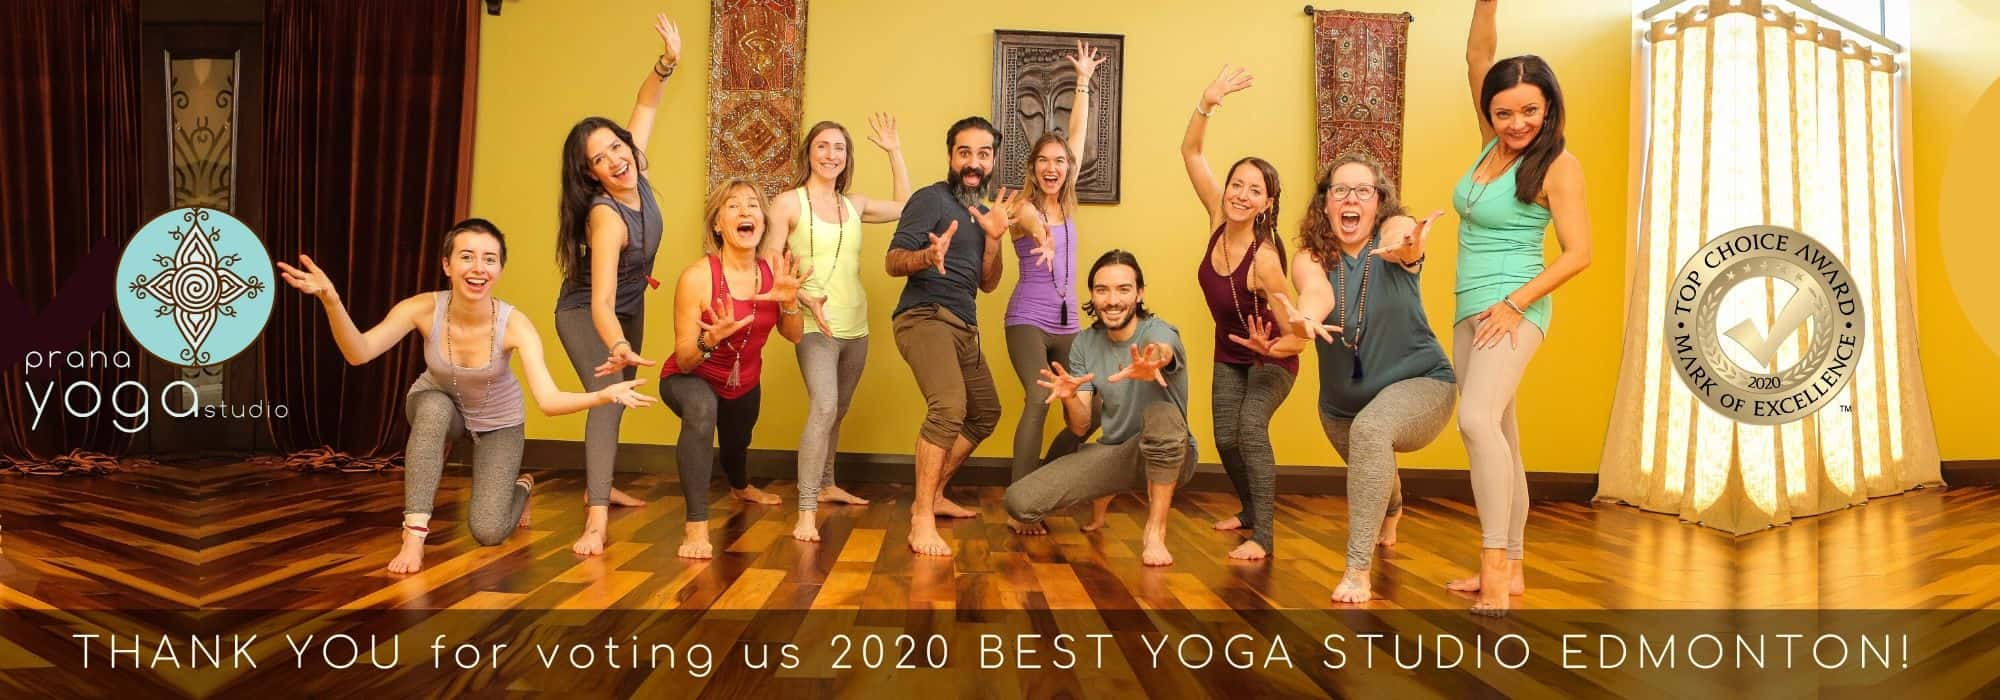 Prana Yoga Studio Edmonton - Hot Yoga, Warm Yoga, Yoga, Training, Teacher Training